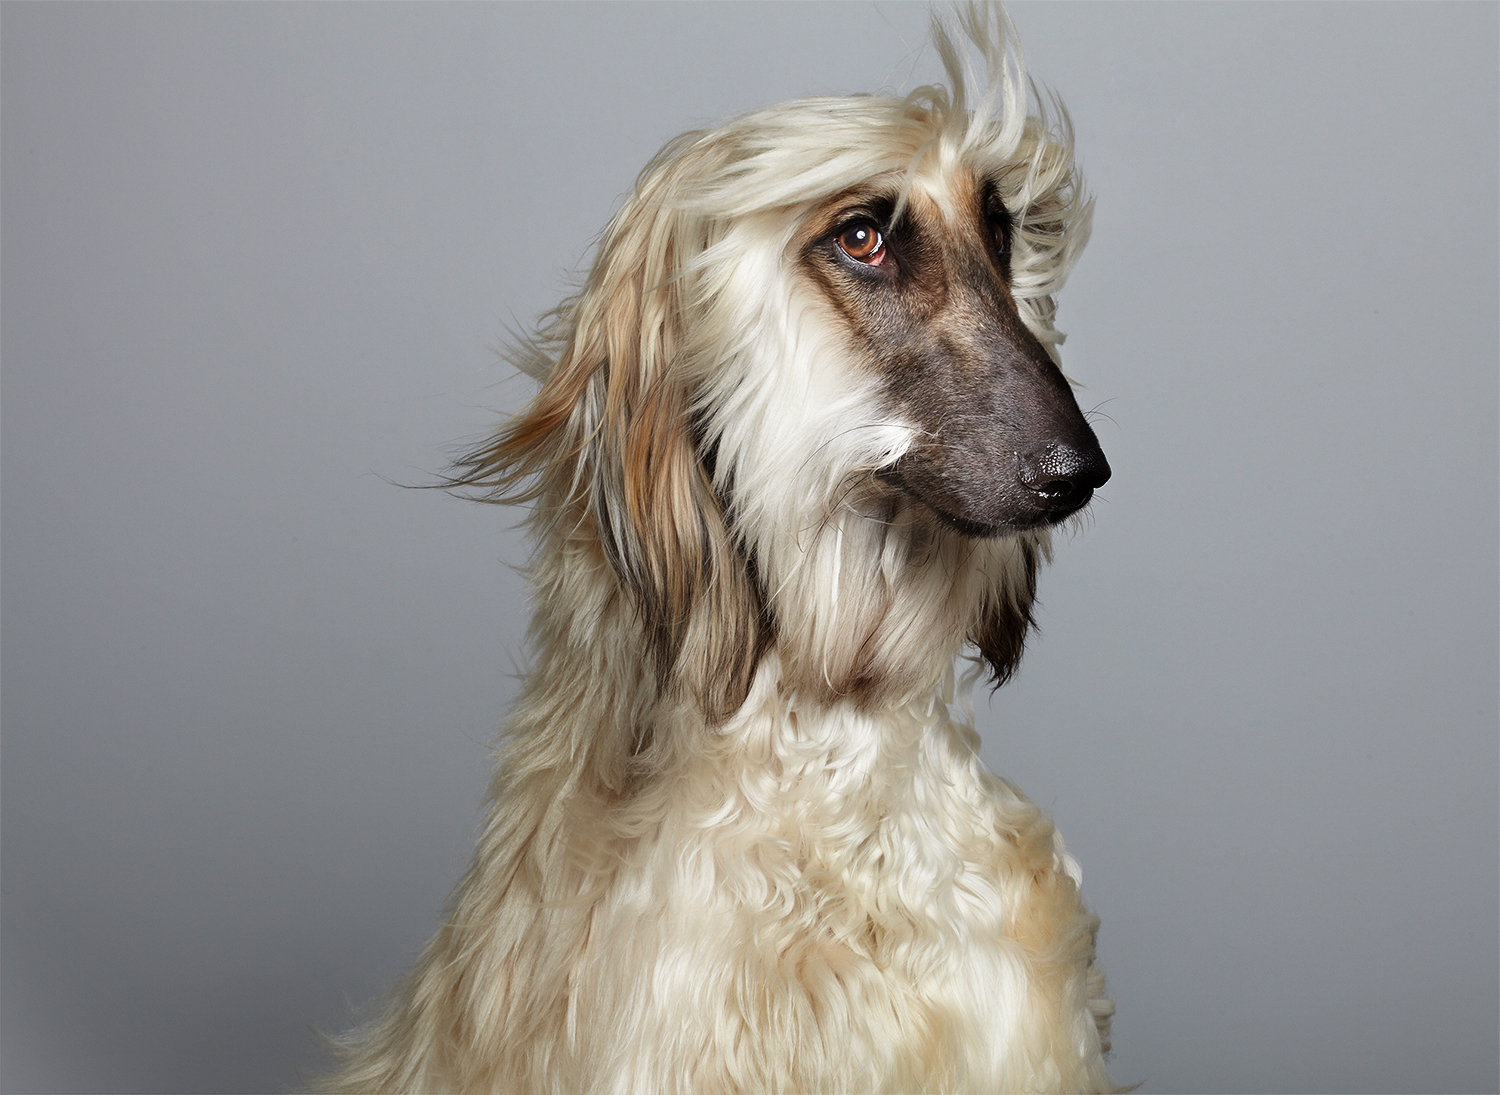 Afghan Hound Duke posing proudly by commercial animal photographer, Peter Samuels.